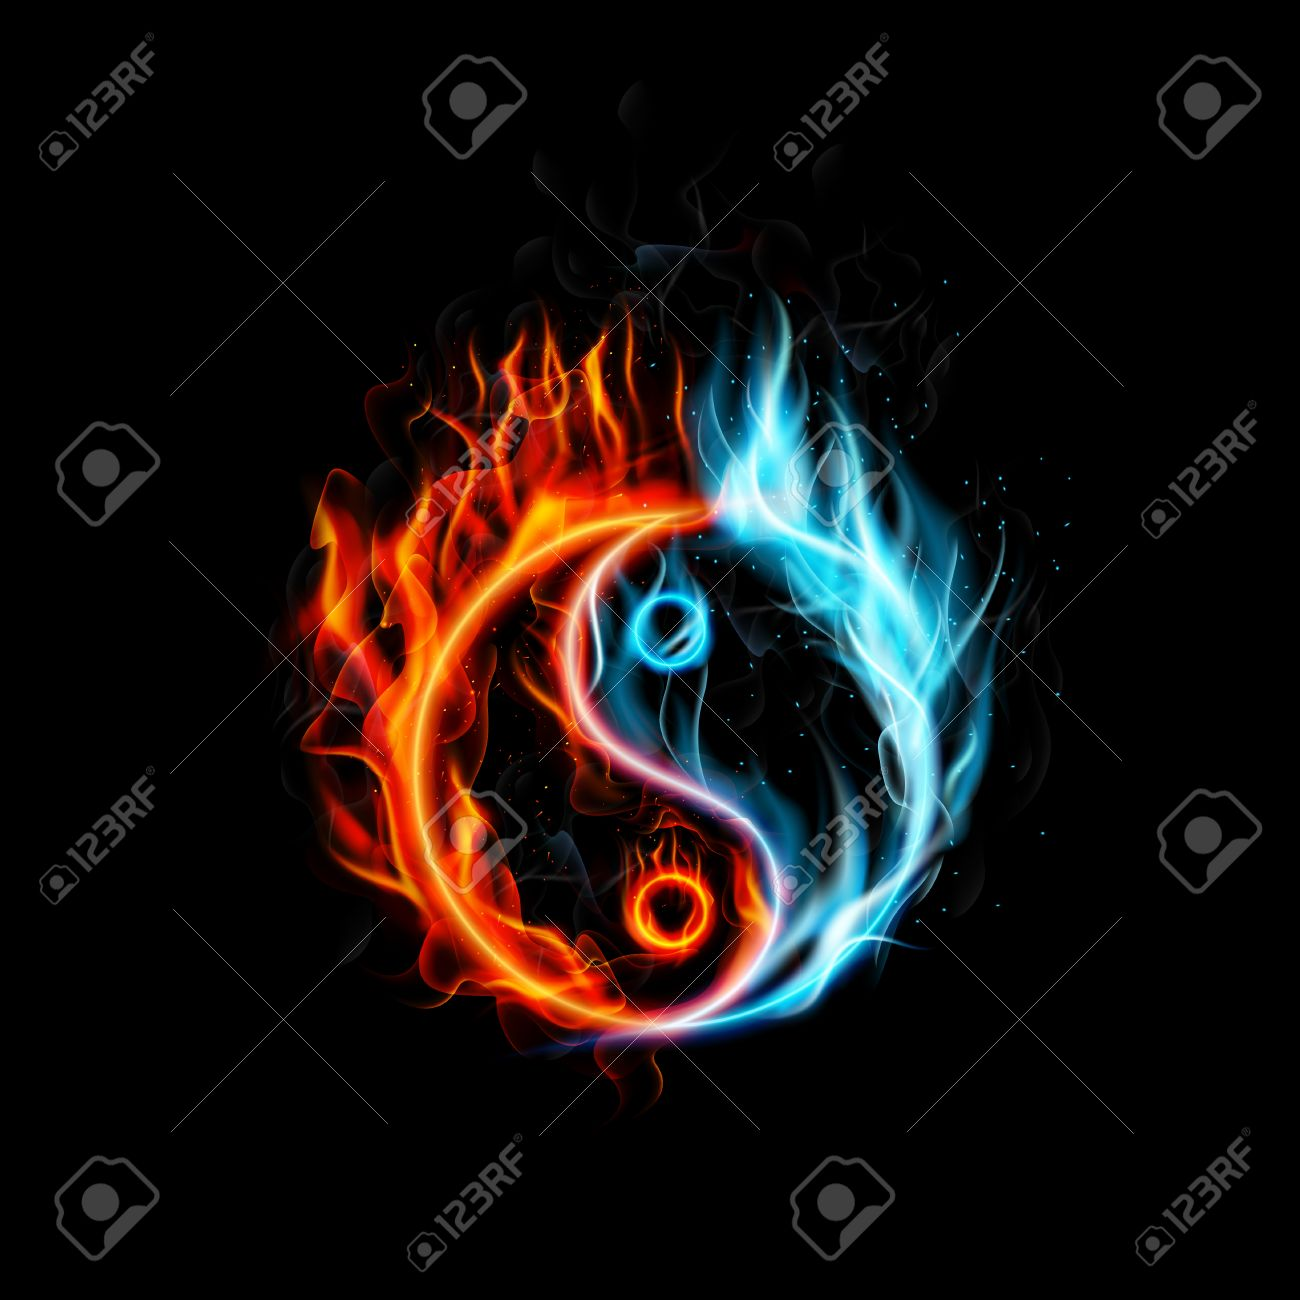 illustration of fire burning yin yang with black background royalty